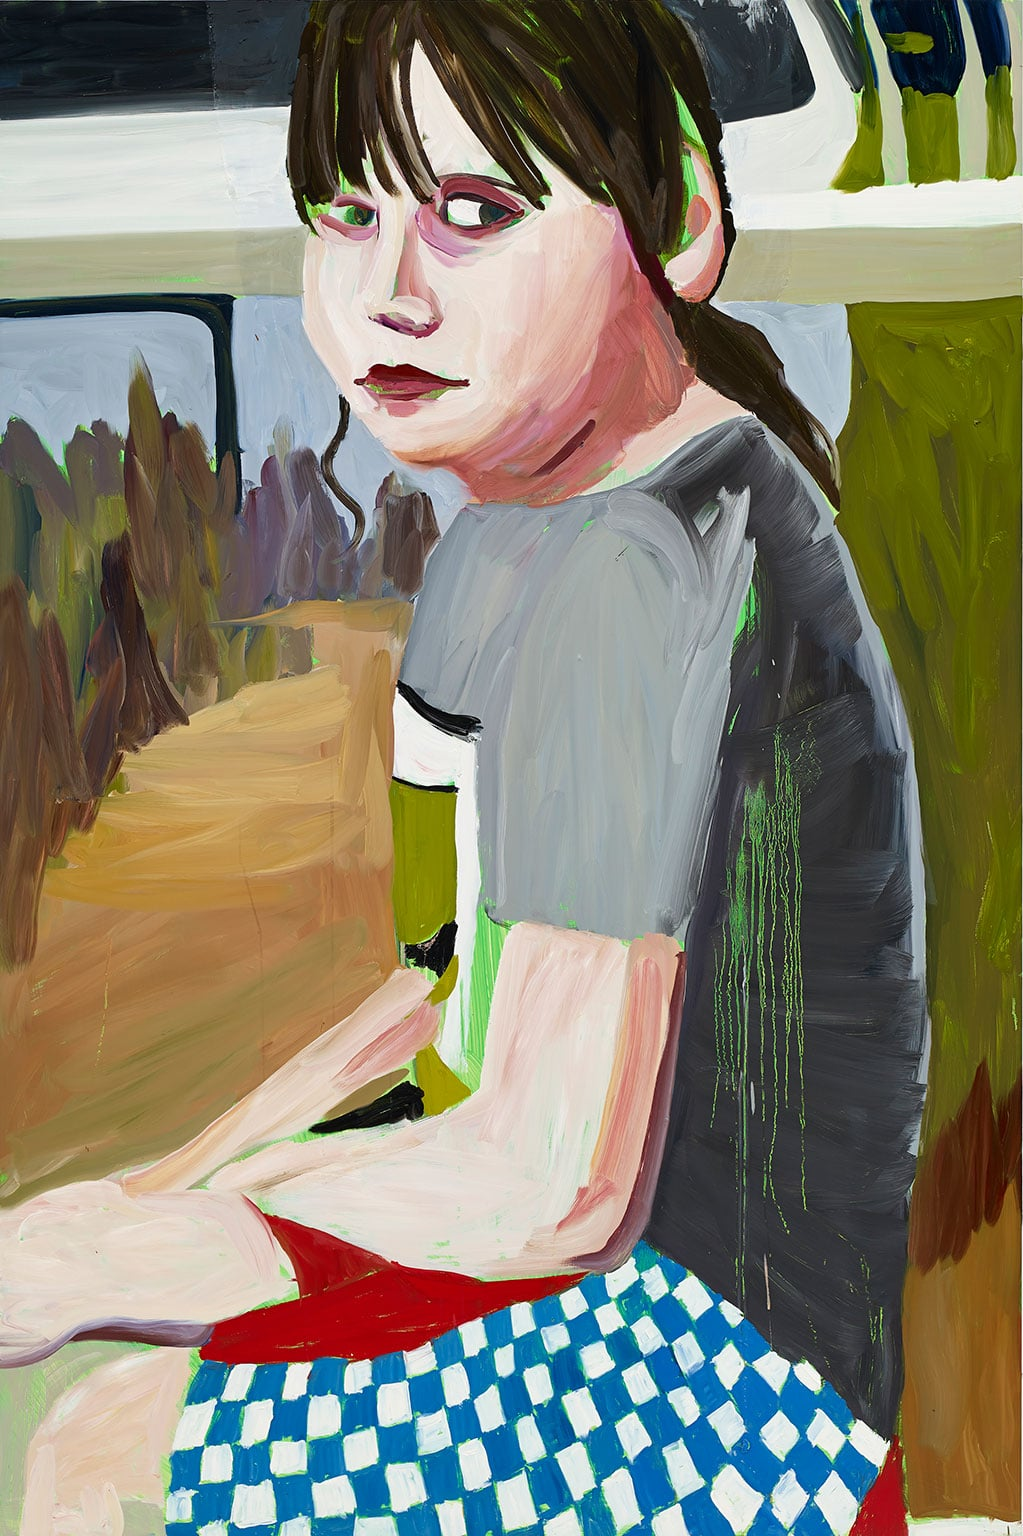 6. Chantal Joffe: Beside the Seaside, Jerwood Gallery - Chantal Joffe, Esme in a Checked Shirt, 2014. Courtesy the artist and Victoria Miro Gallery. © Chantal Joffe